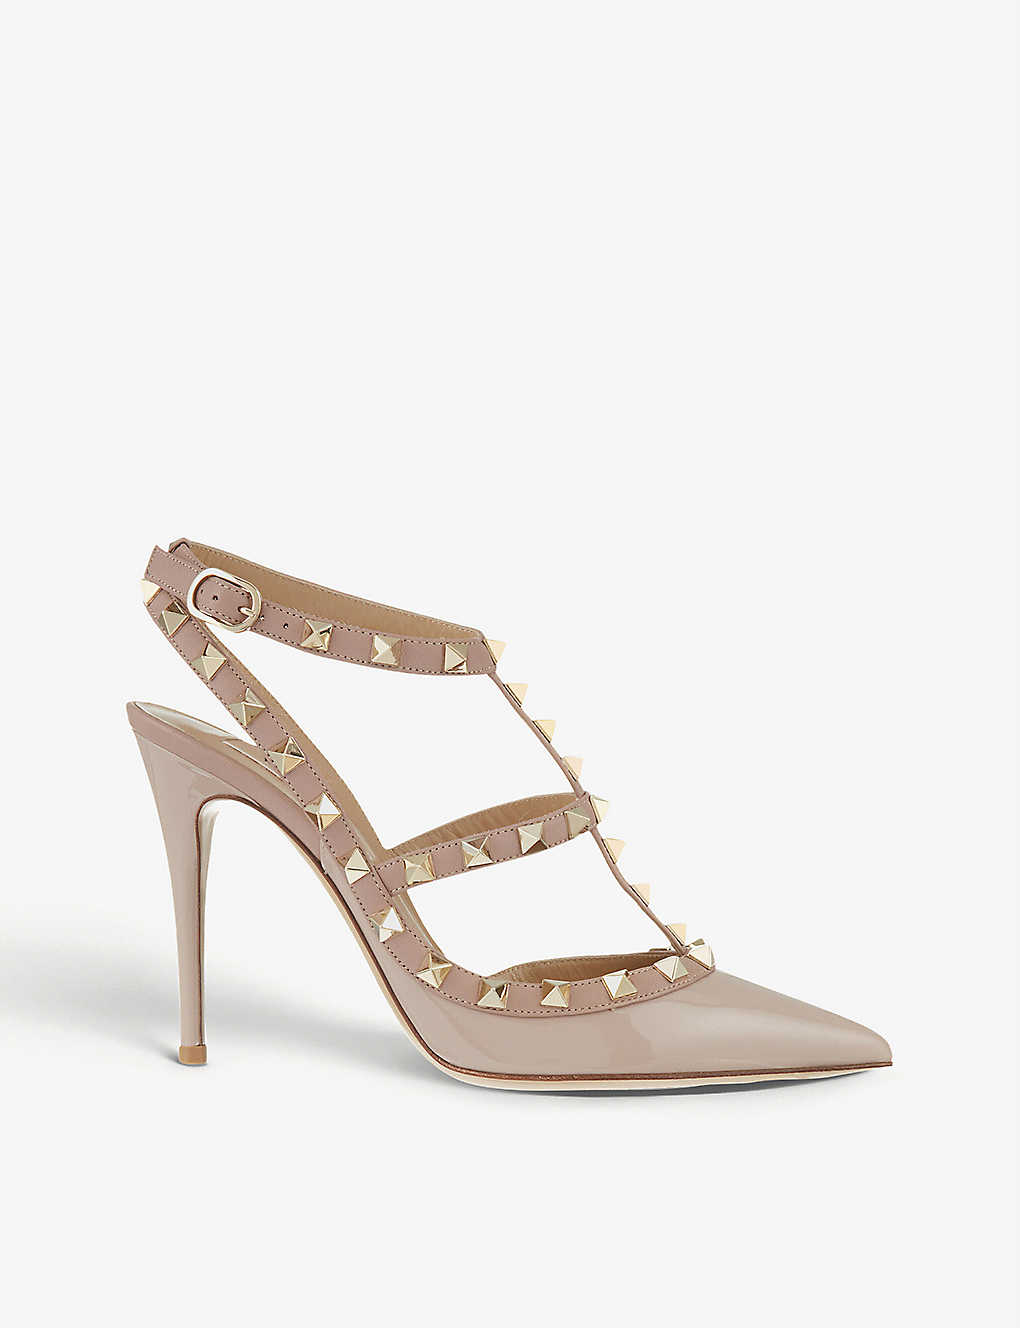 87ac6e41d98 VALENTINO - Rockstud patent leather heels